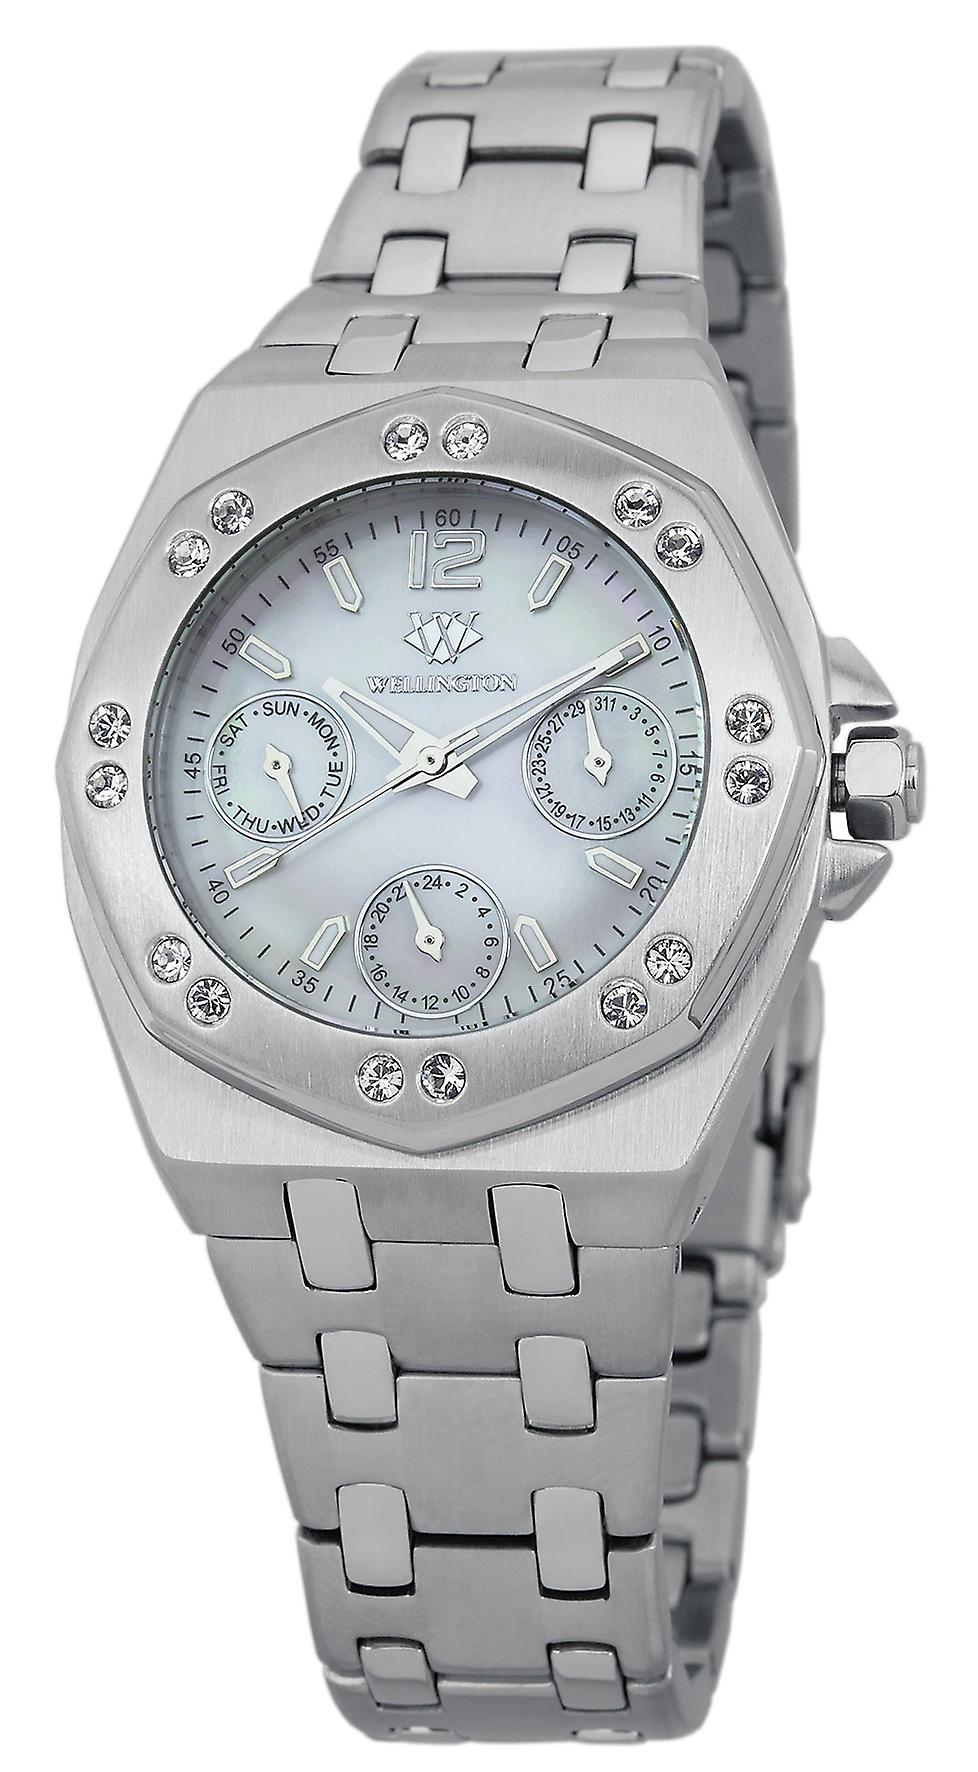 Wellington Moana WN510-181 - Ladies Quartz Watch